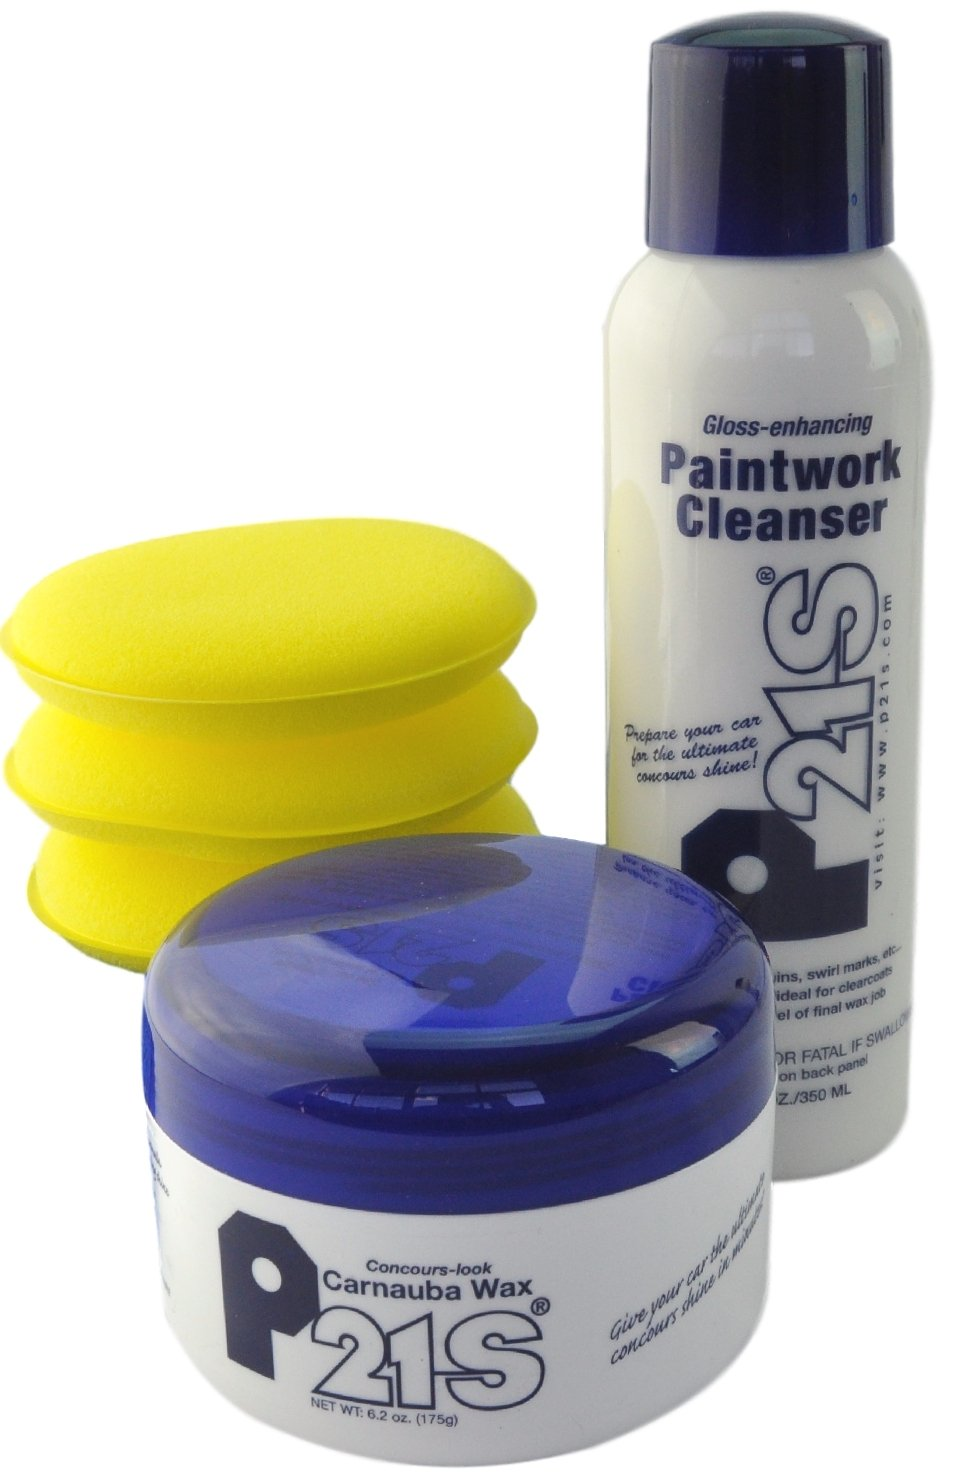 P21S Concours Carnauba Wax, Gloss Enhancing Paintwork Cleanser, and Applicator Package by P21S (Image #1)